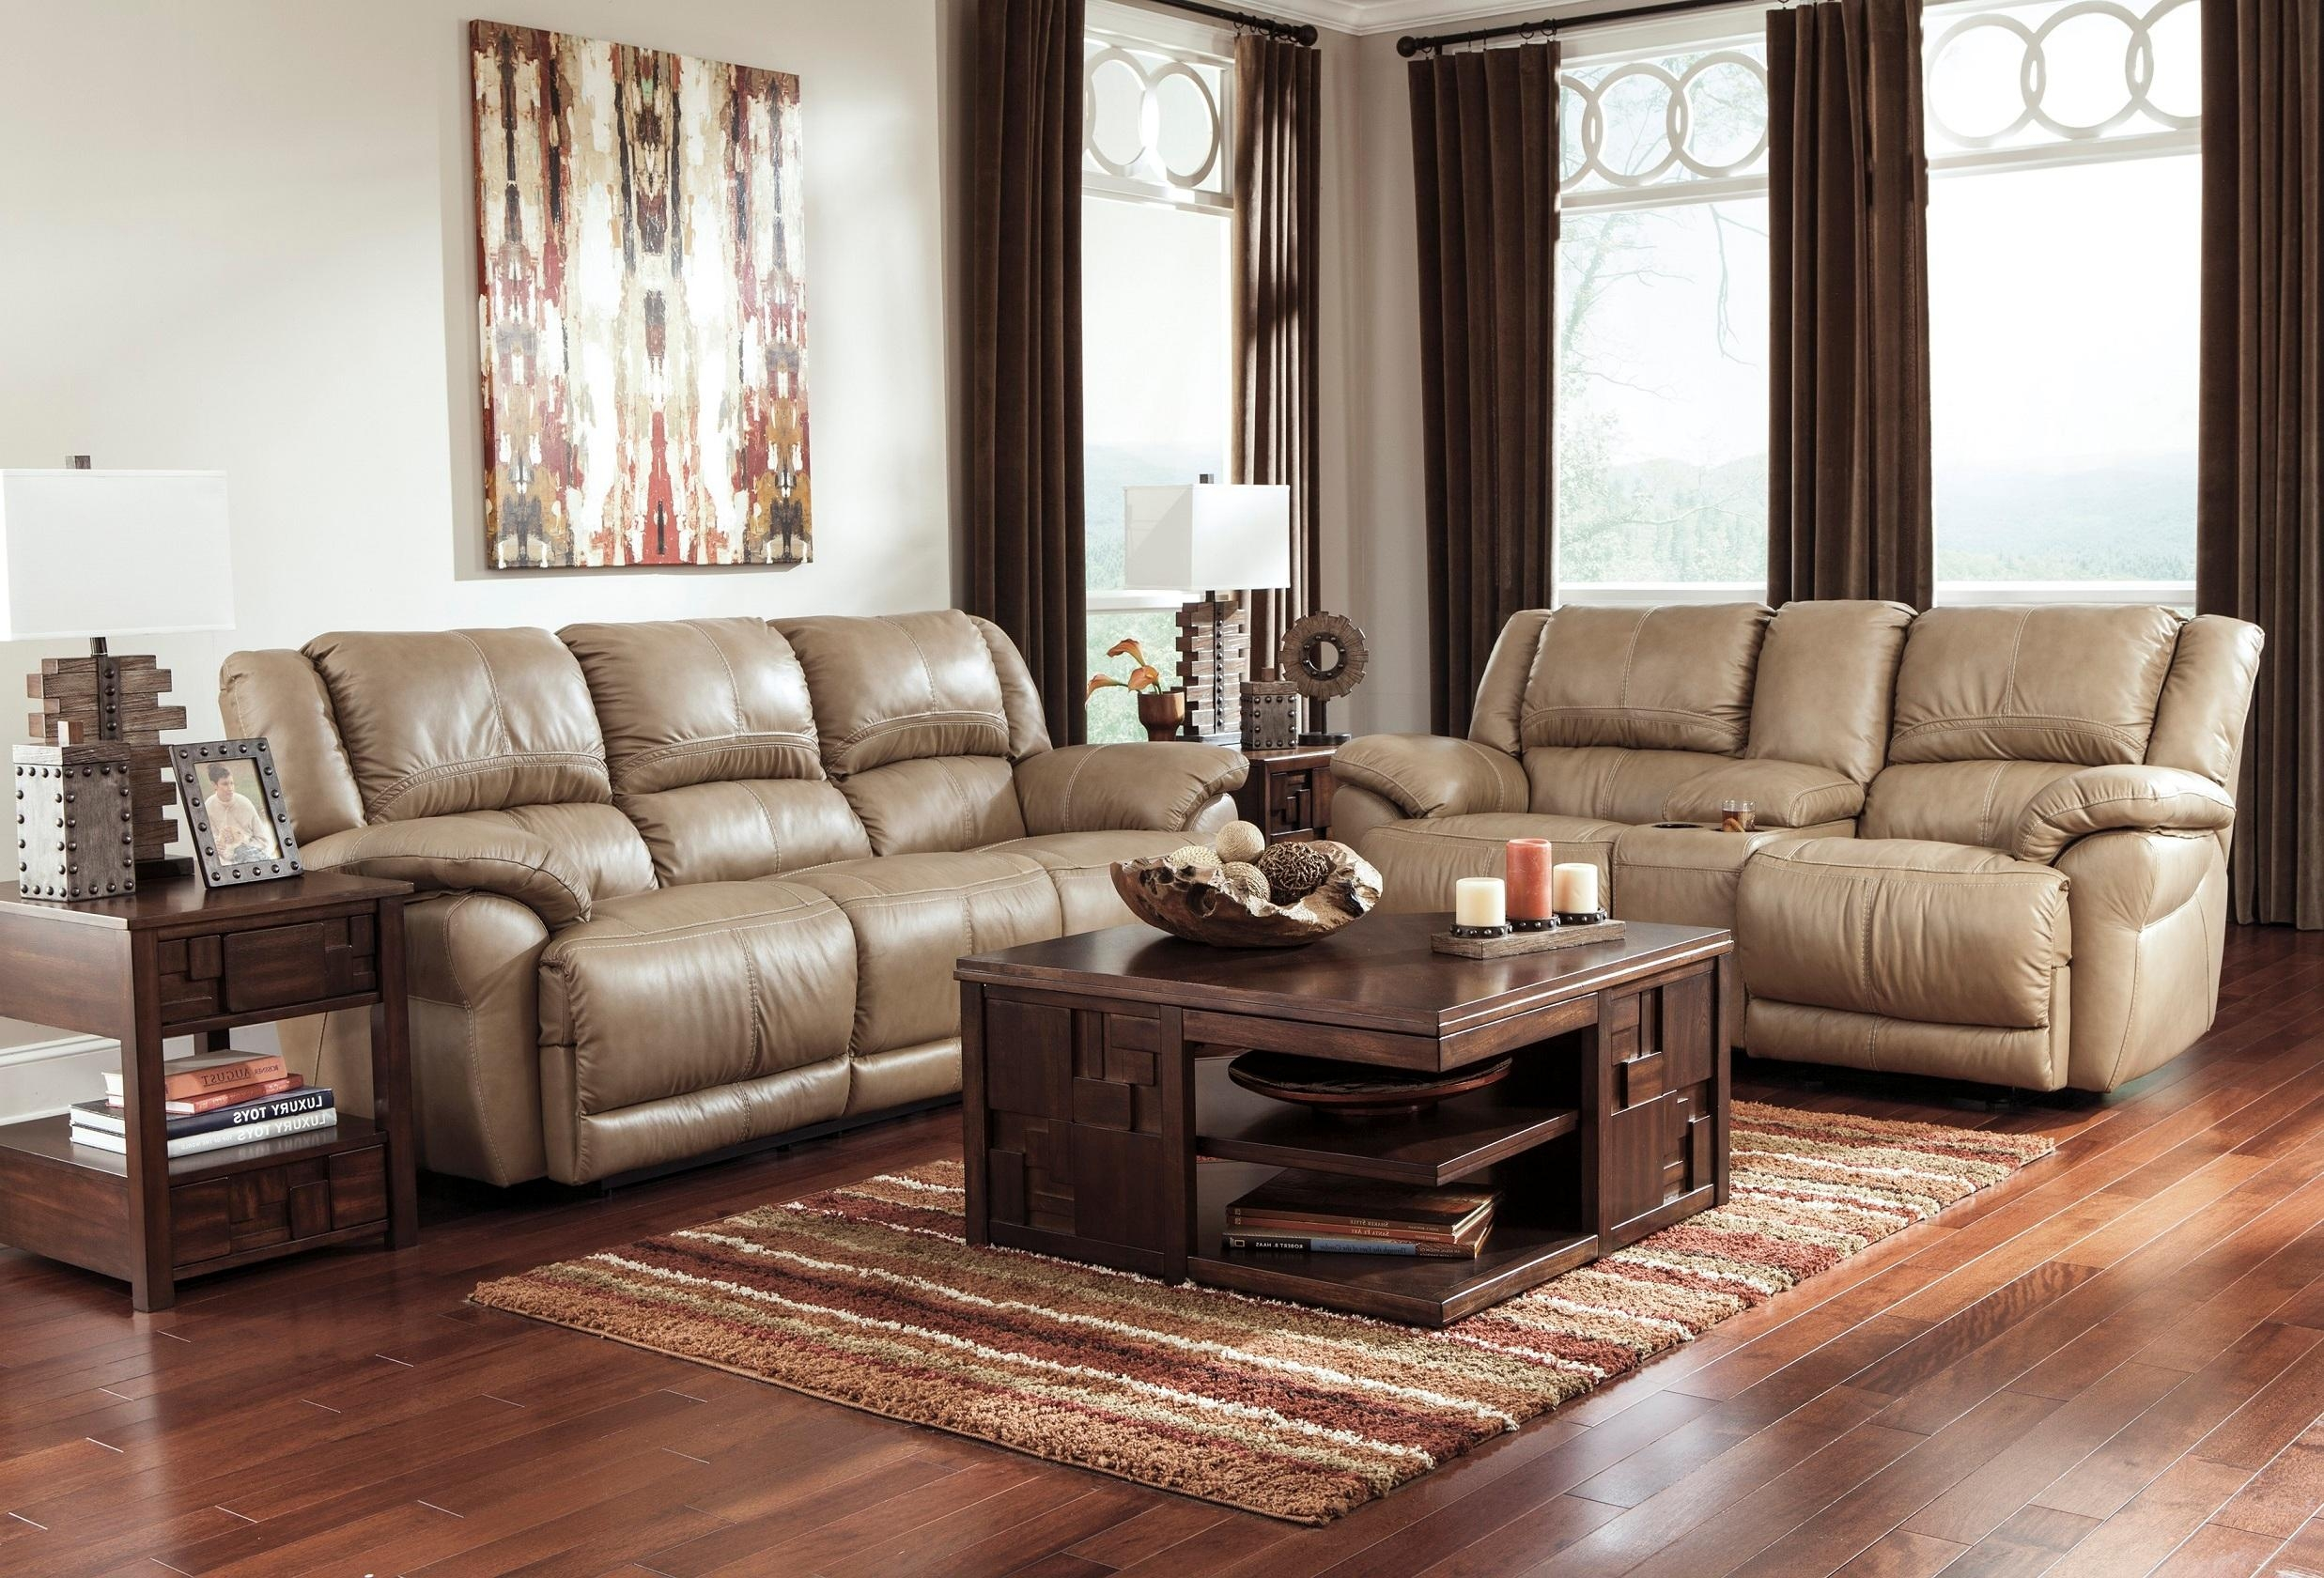 Furniture: Add Luxury To Your Home With Full Grain Leather With High Quality Leather Sectional (View 6 of 20)